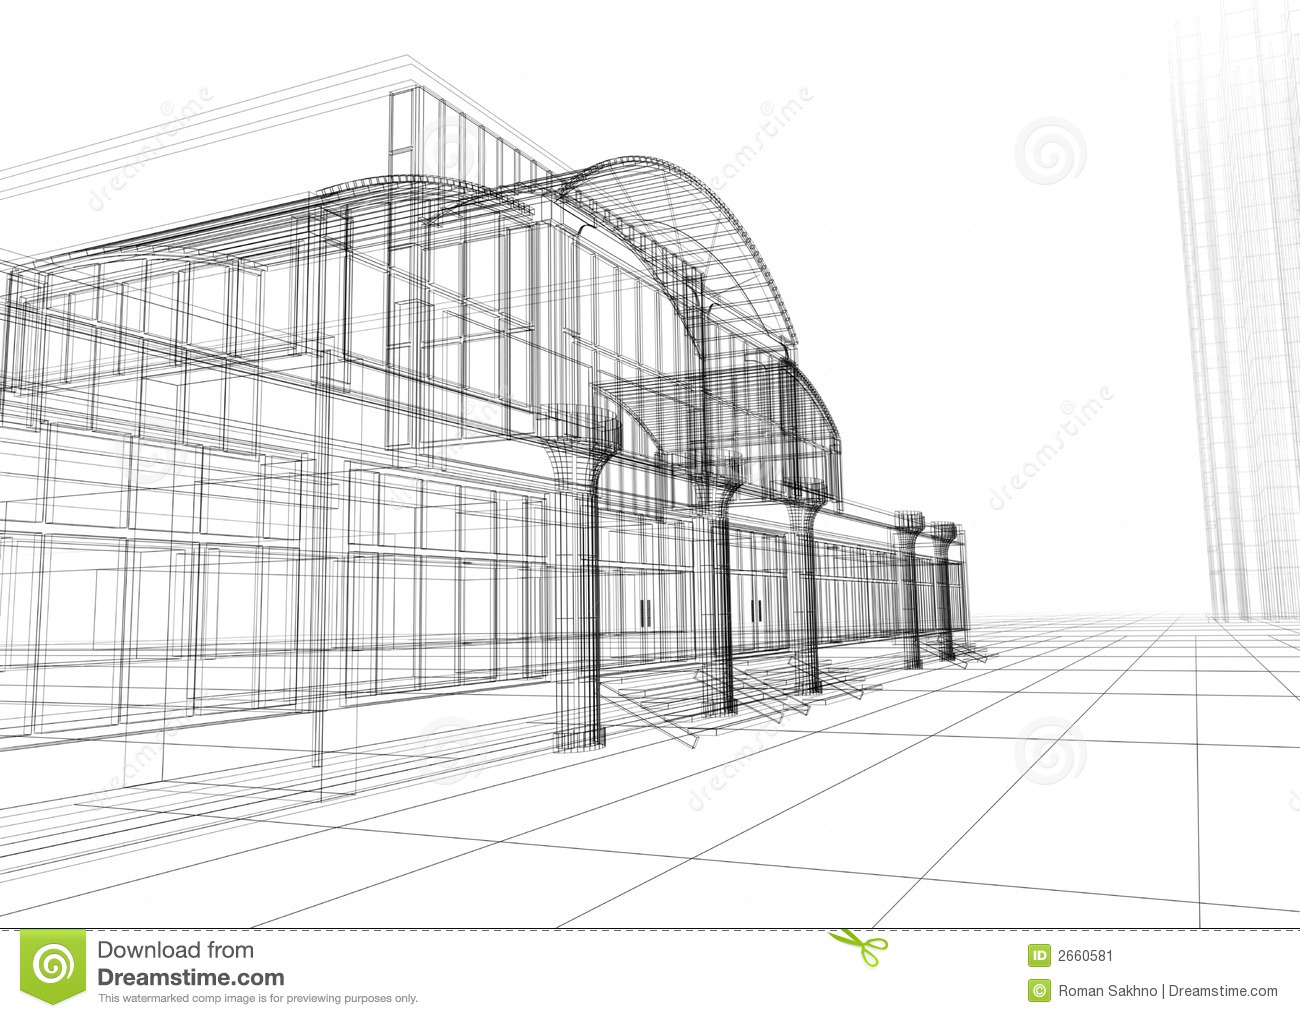 Wireframe Dell Edificio Per Uffici Illustrazione Di Stock